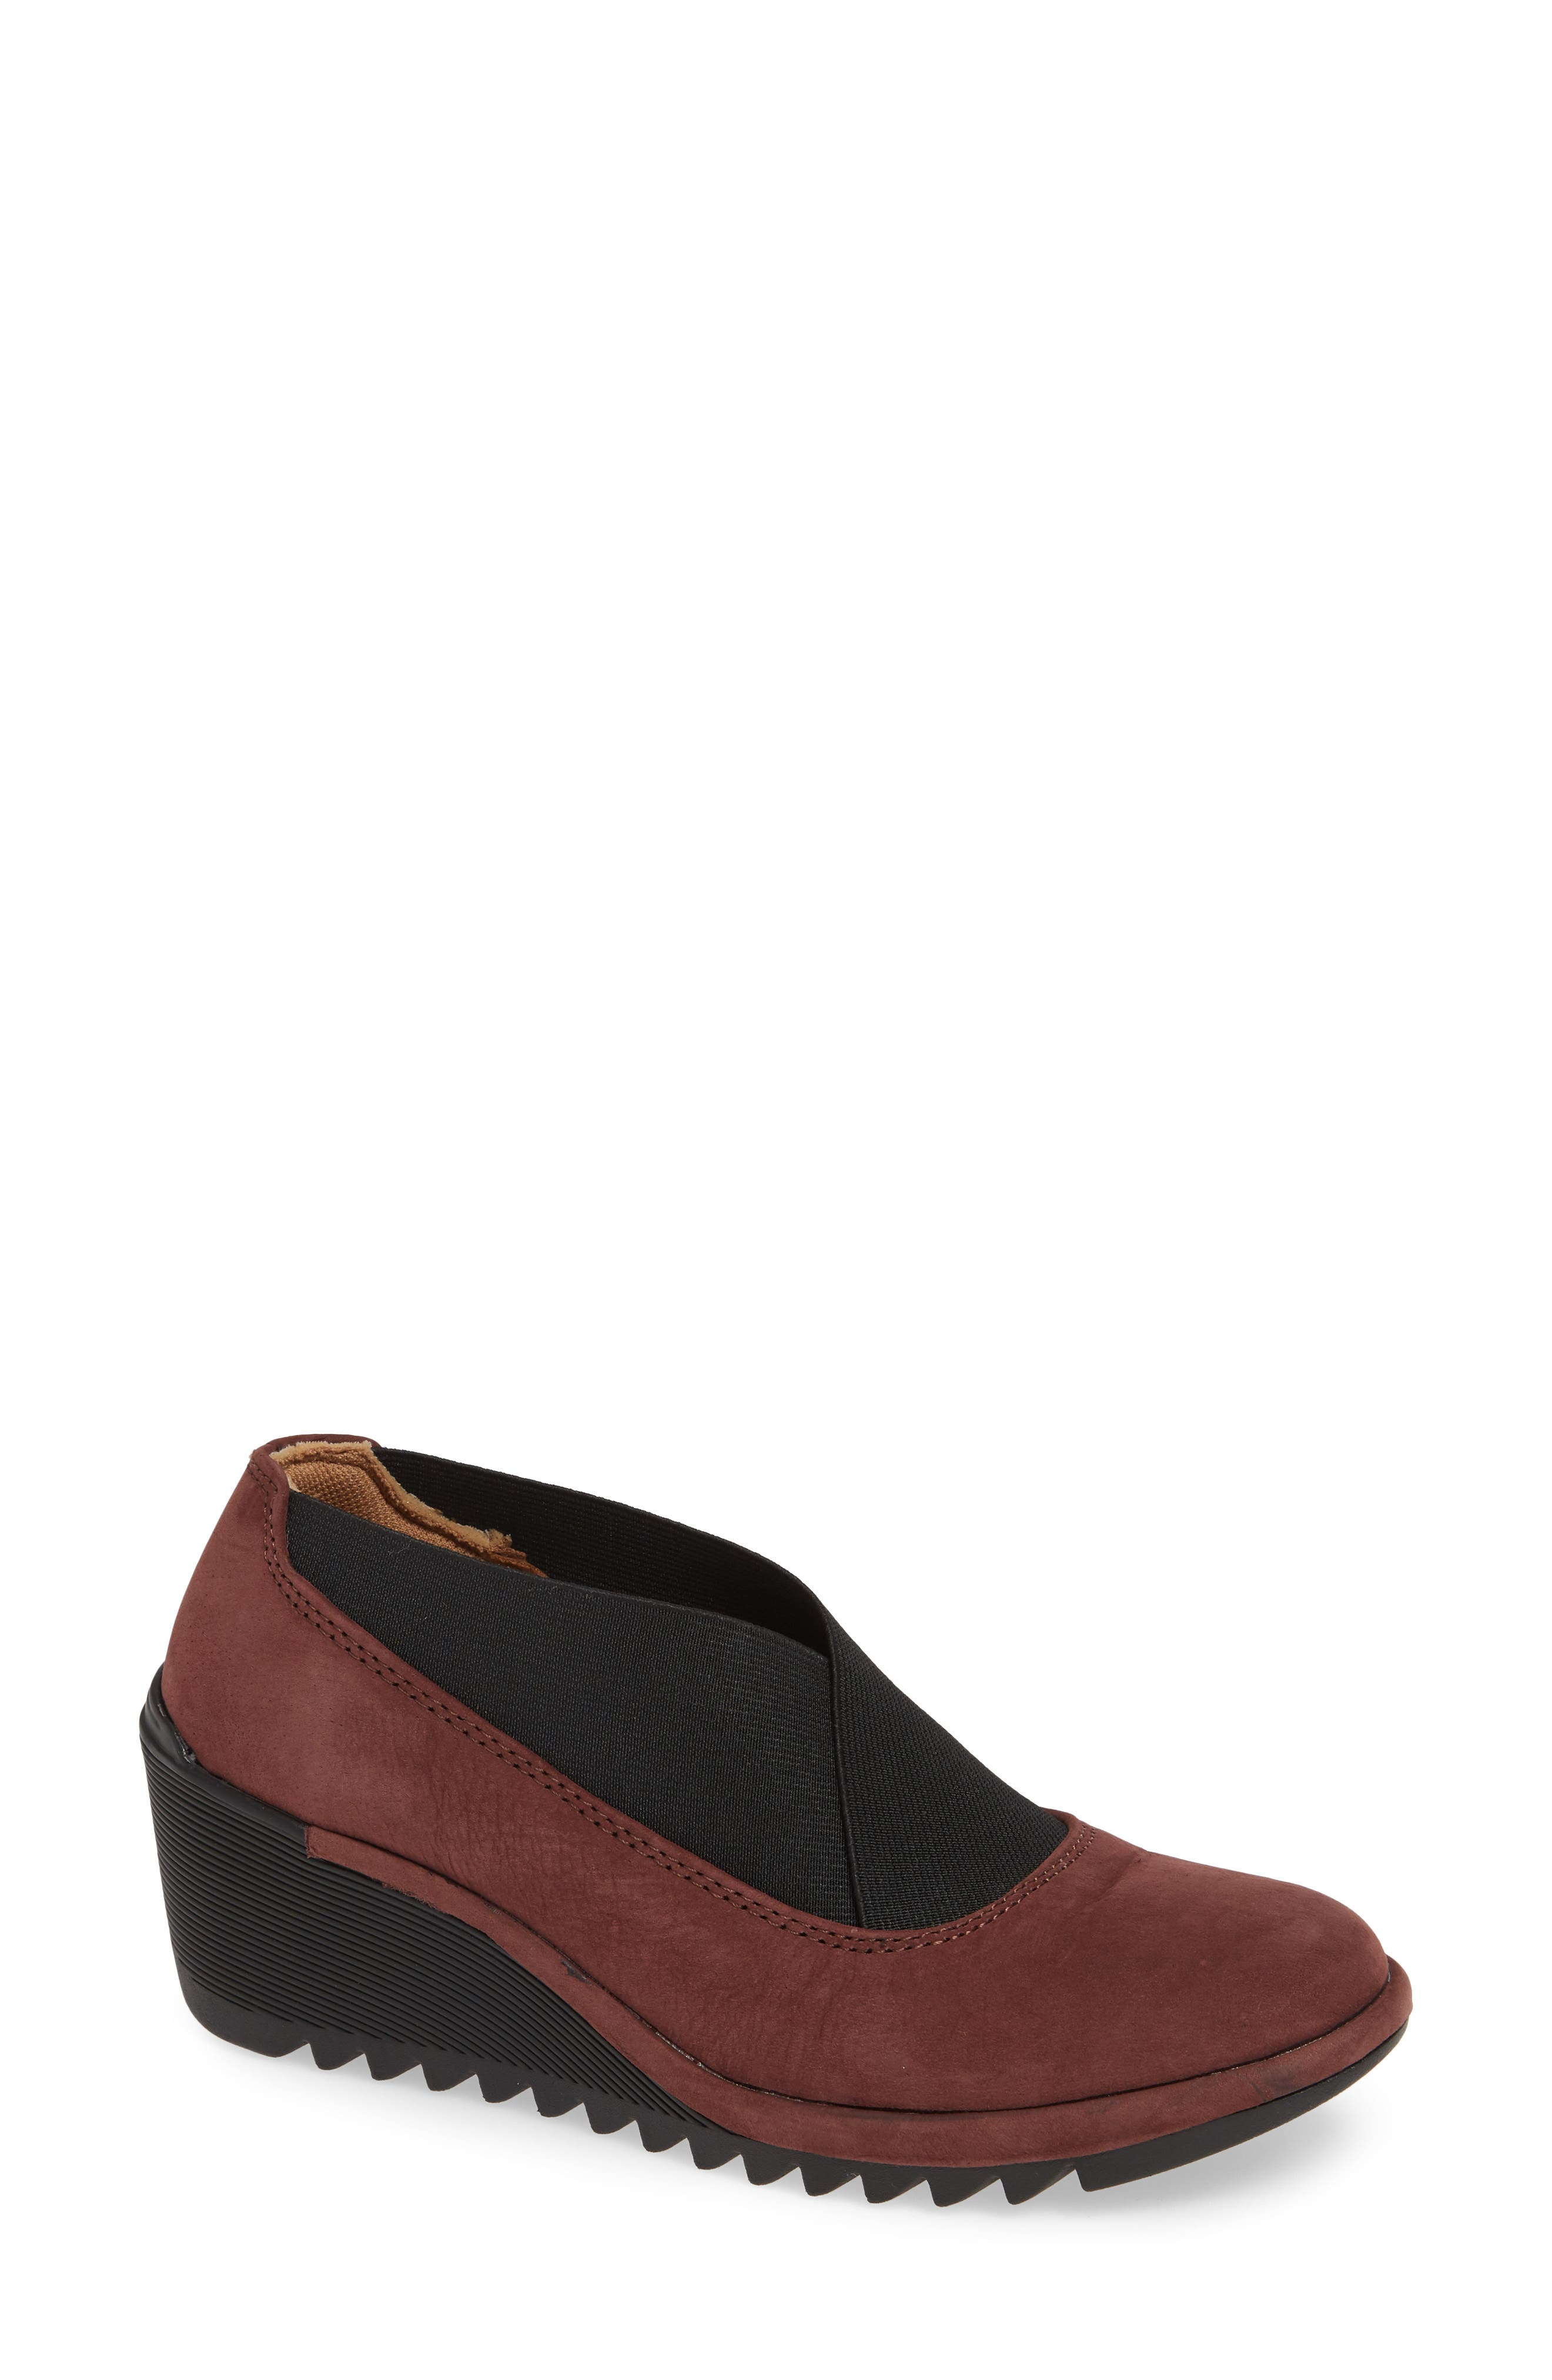 Comfortiva Ashford Ankle Bootie- Brown